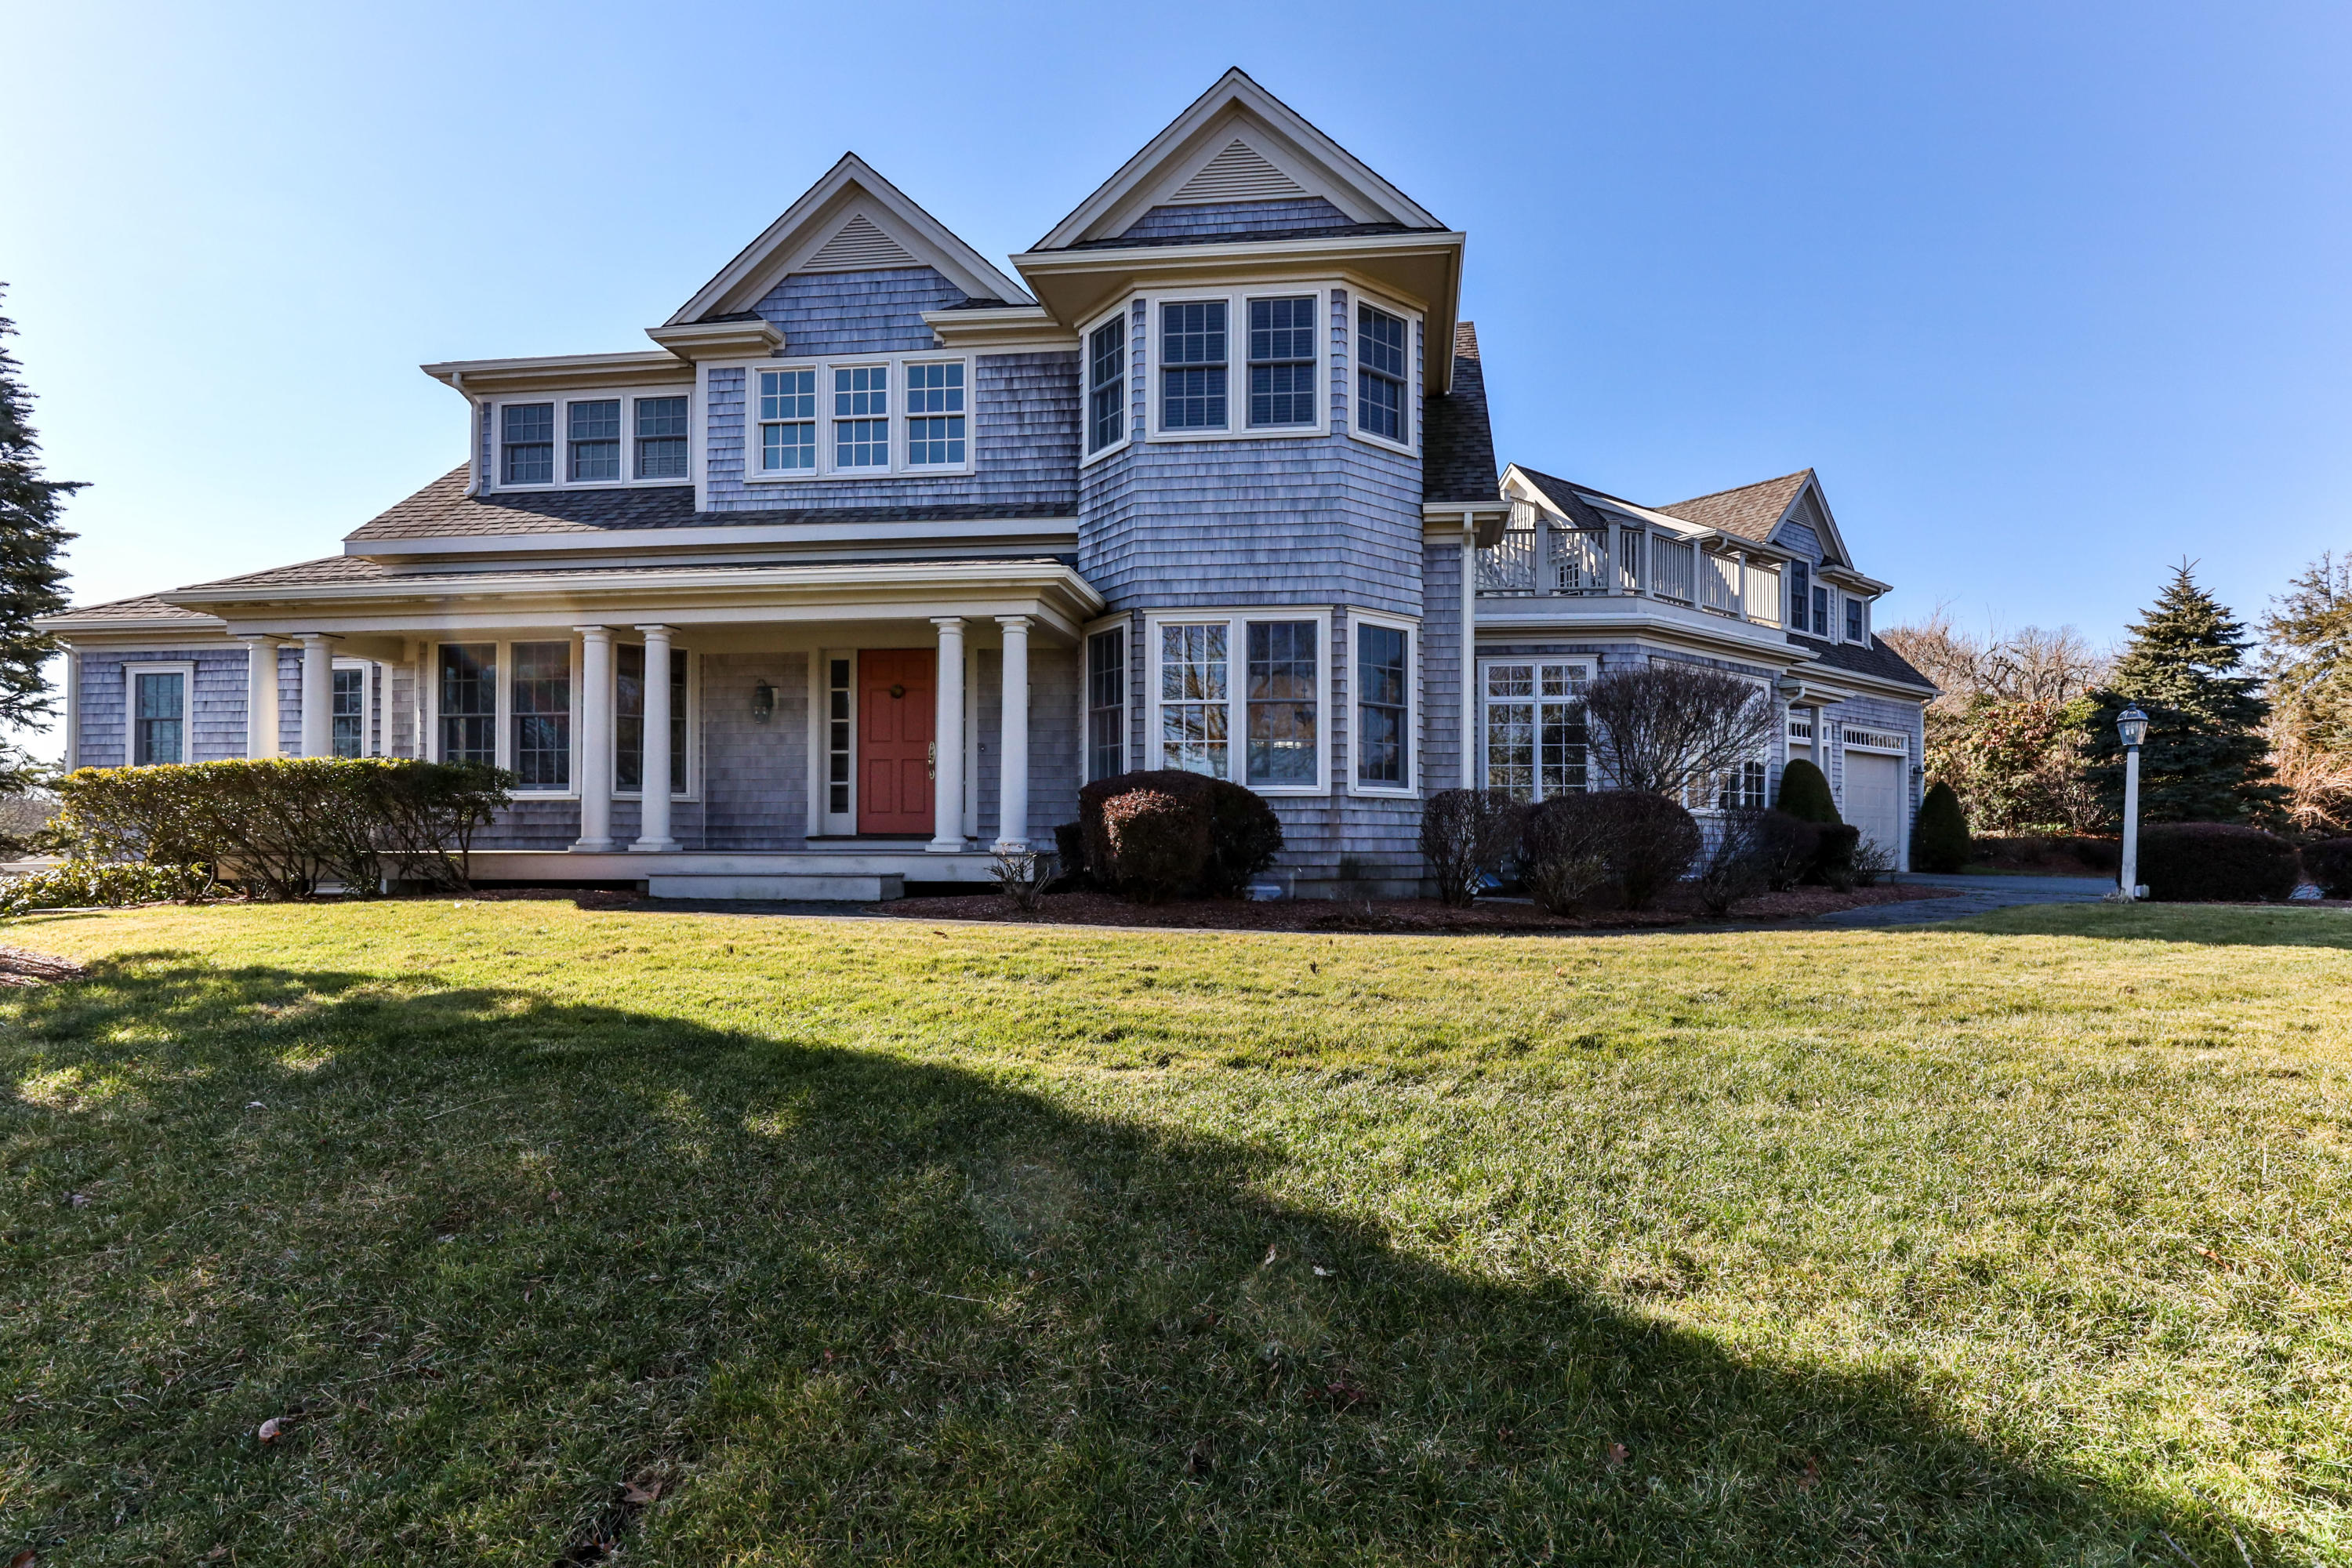 230 N Skyline Drive, Chatham MA, 02633 sales details